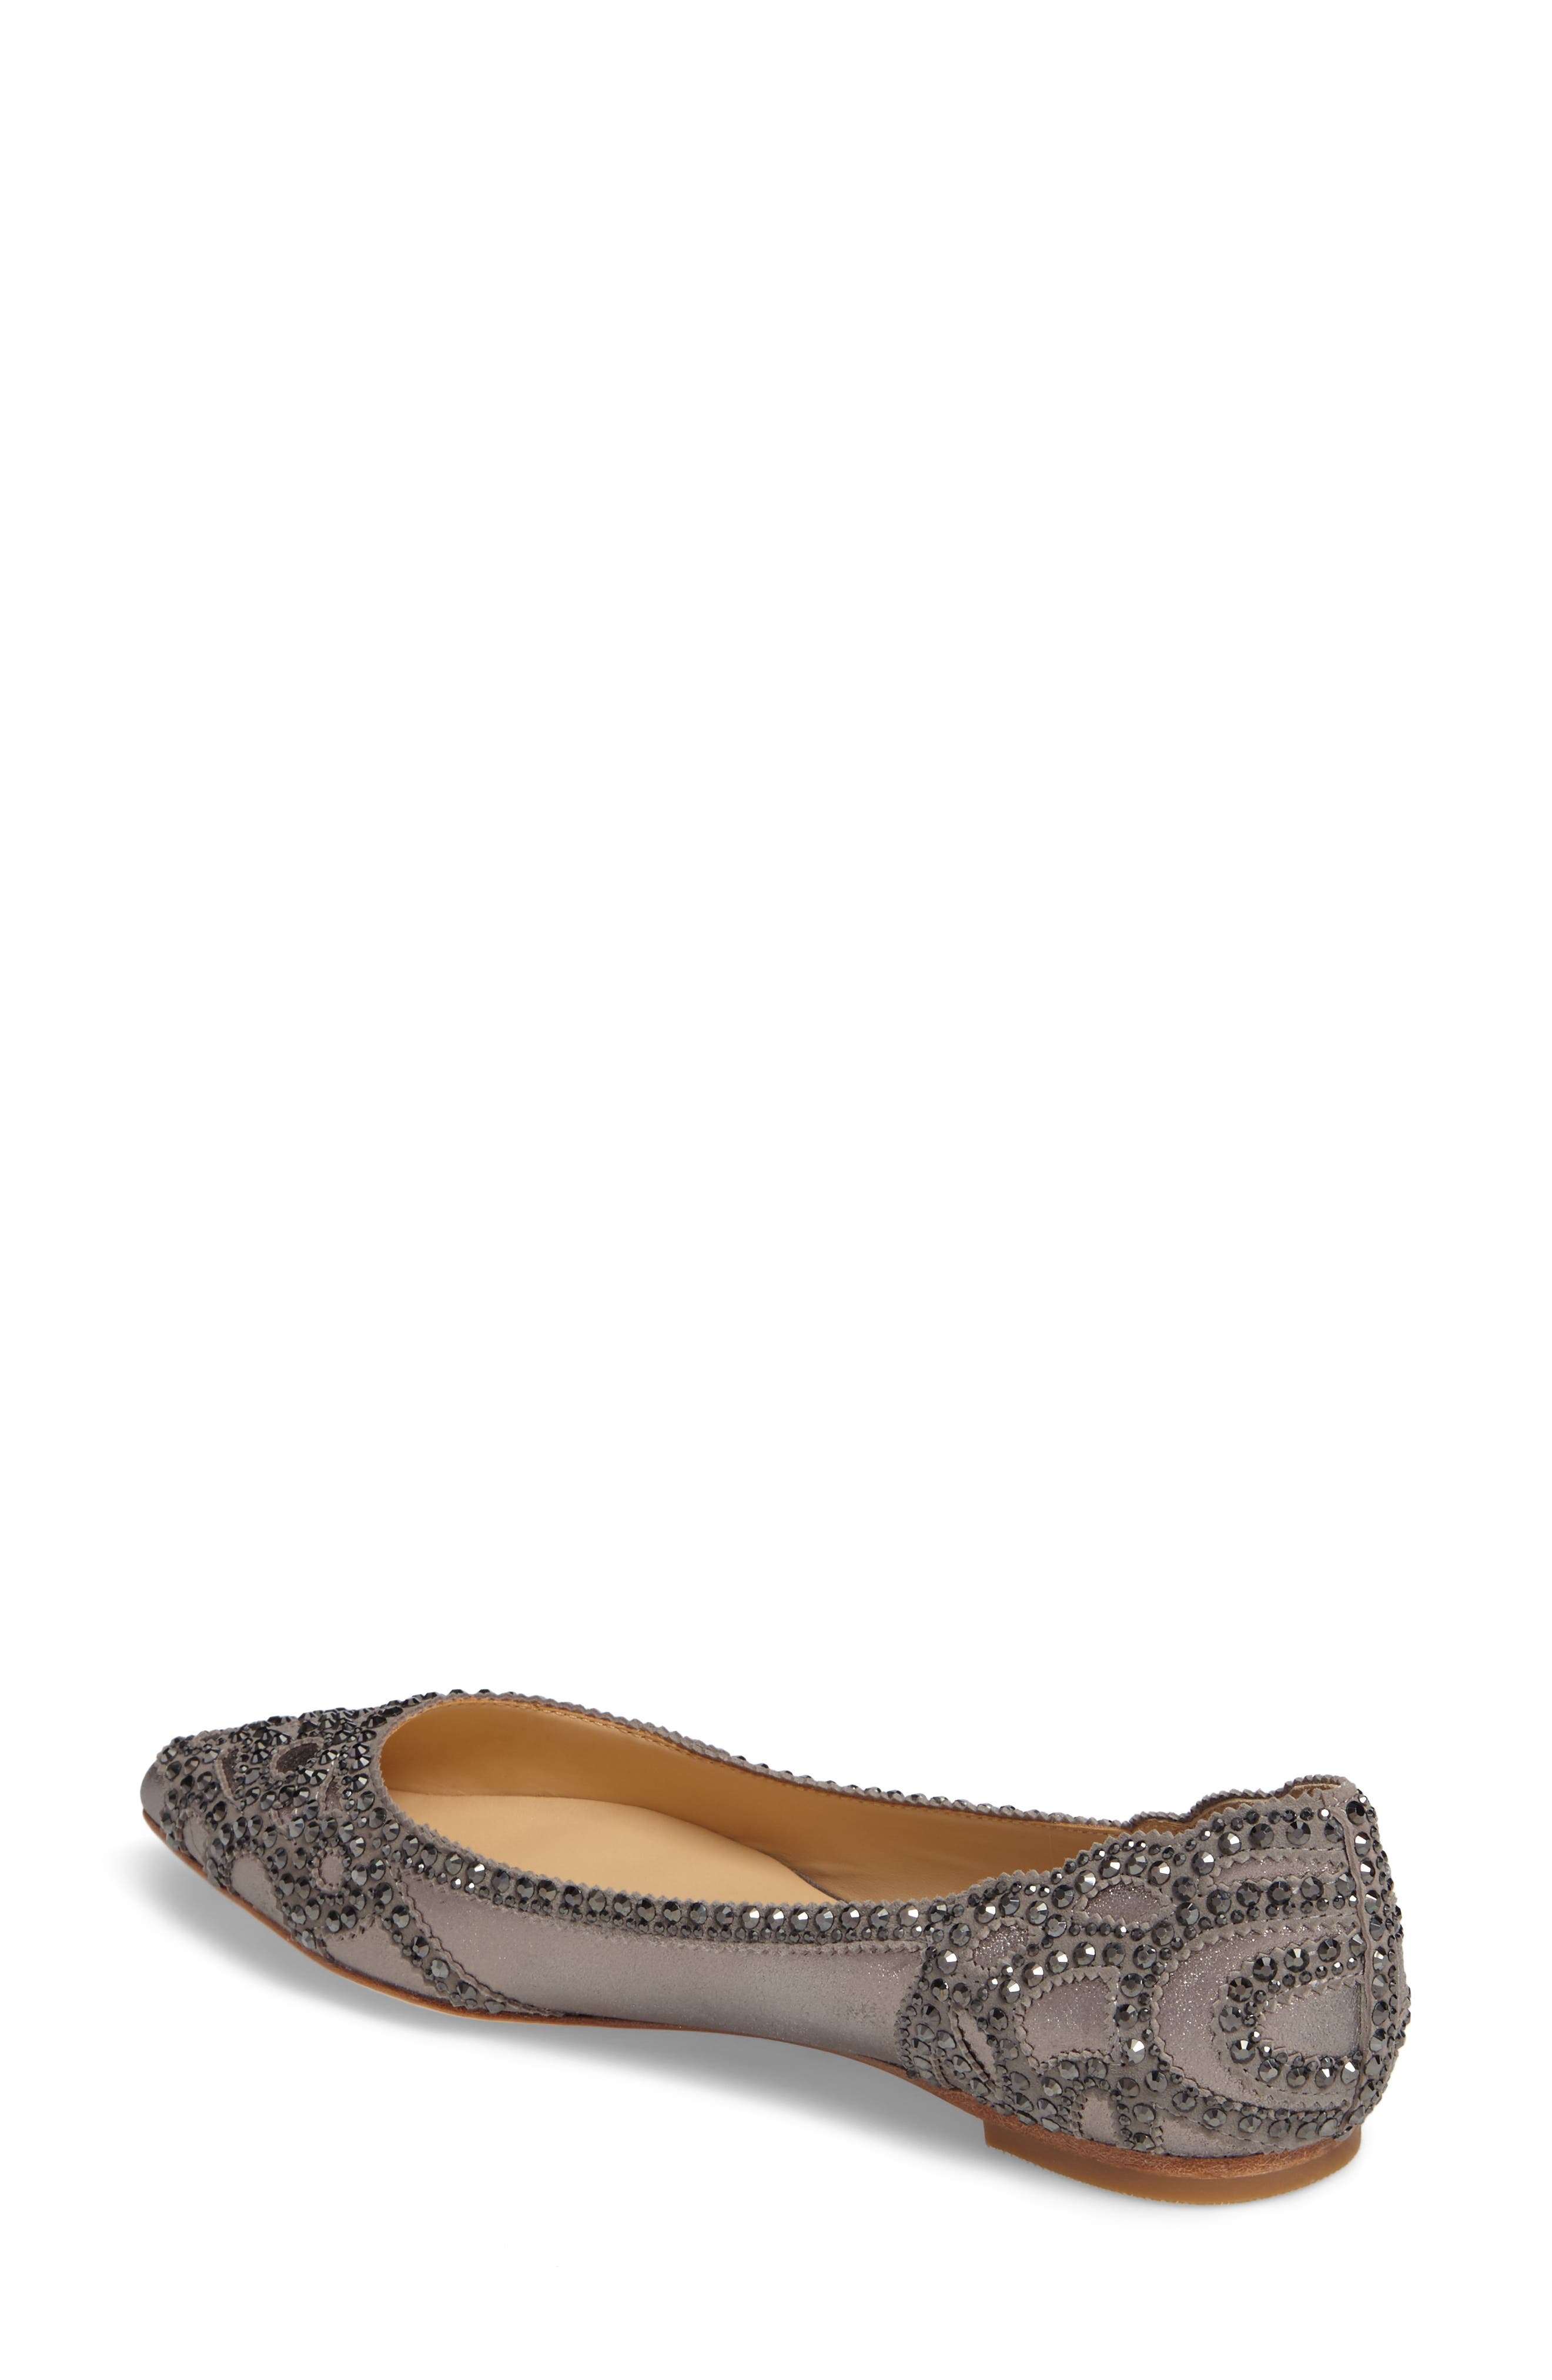 Gigi Crystal Pointy Toe Flat,                             Alternate thumbnail 7, color,